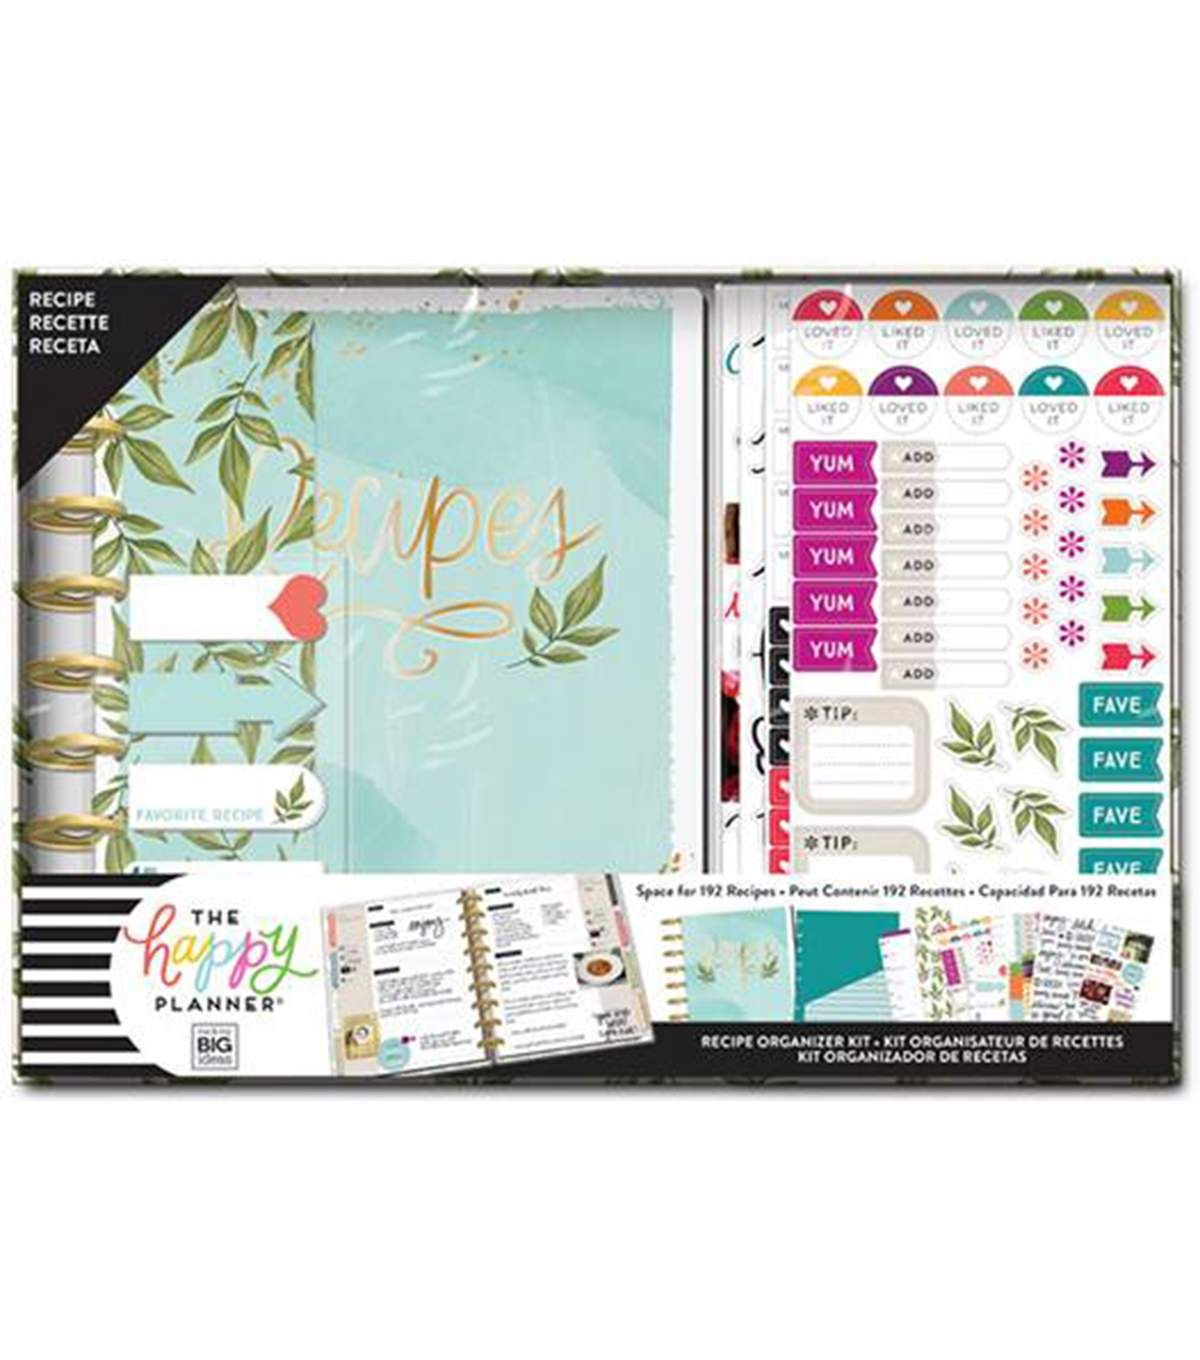 The Happy Planner Box Kit Cooking,